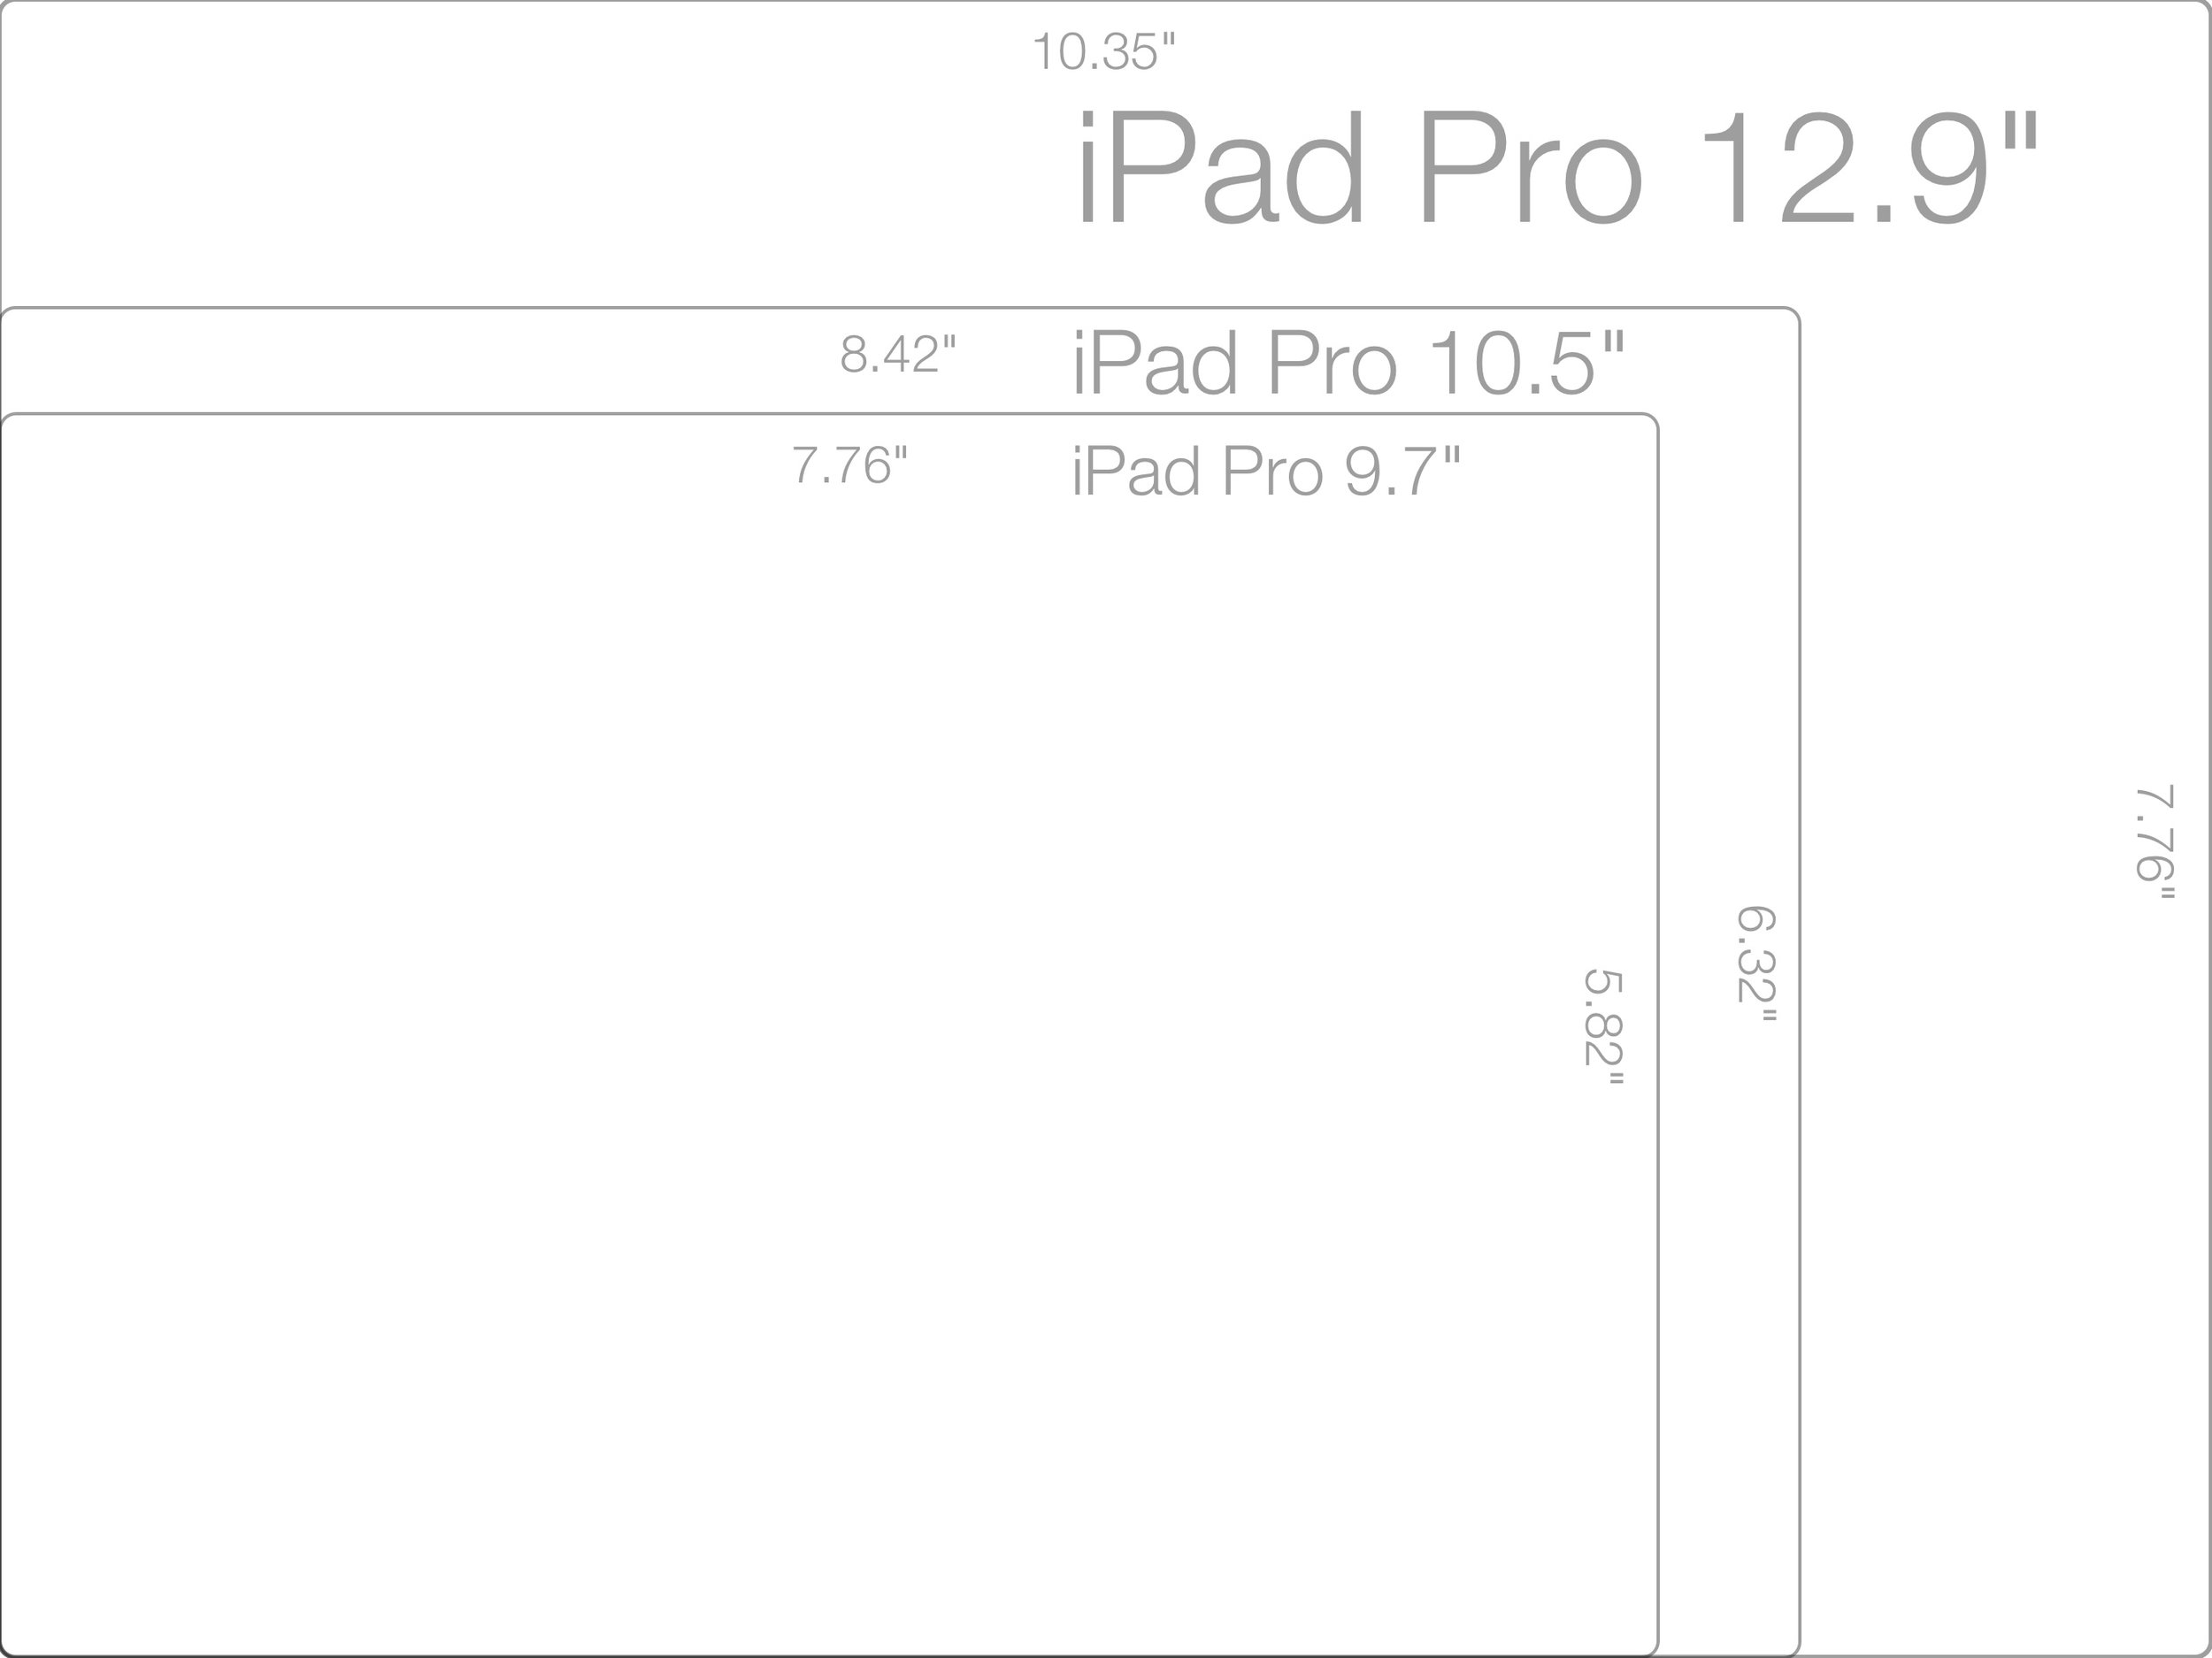 iPad Pro Relative Screen Sizes